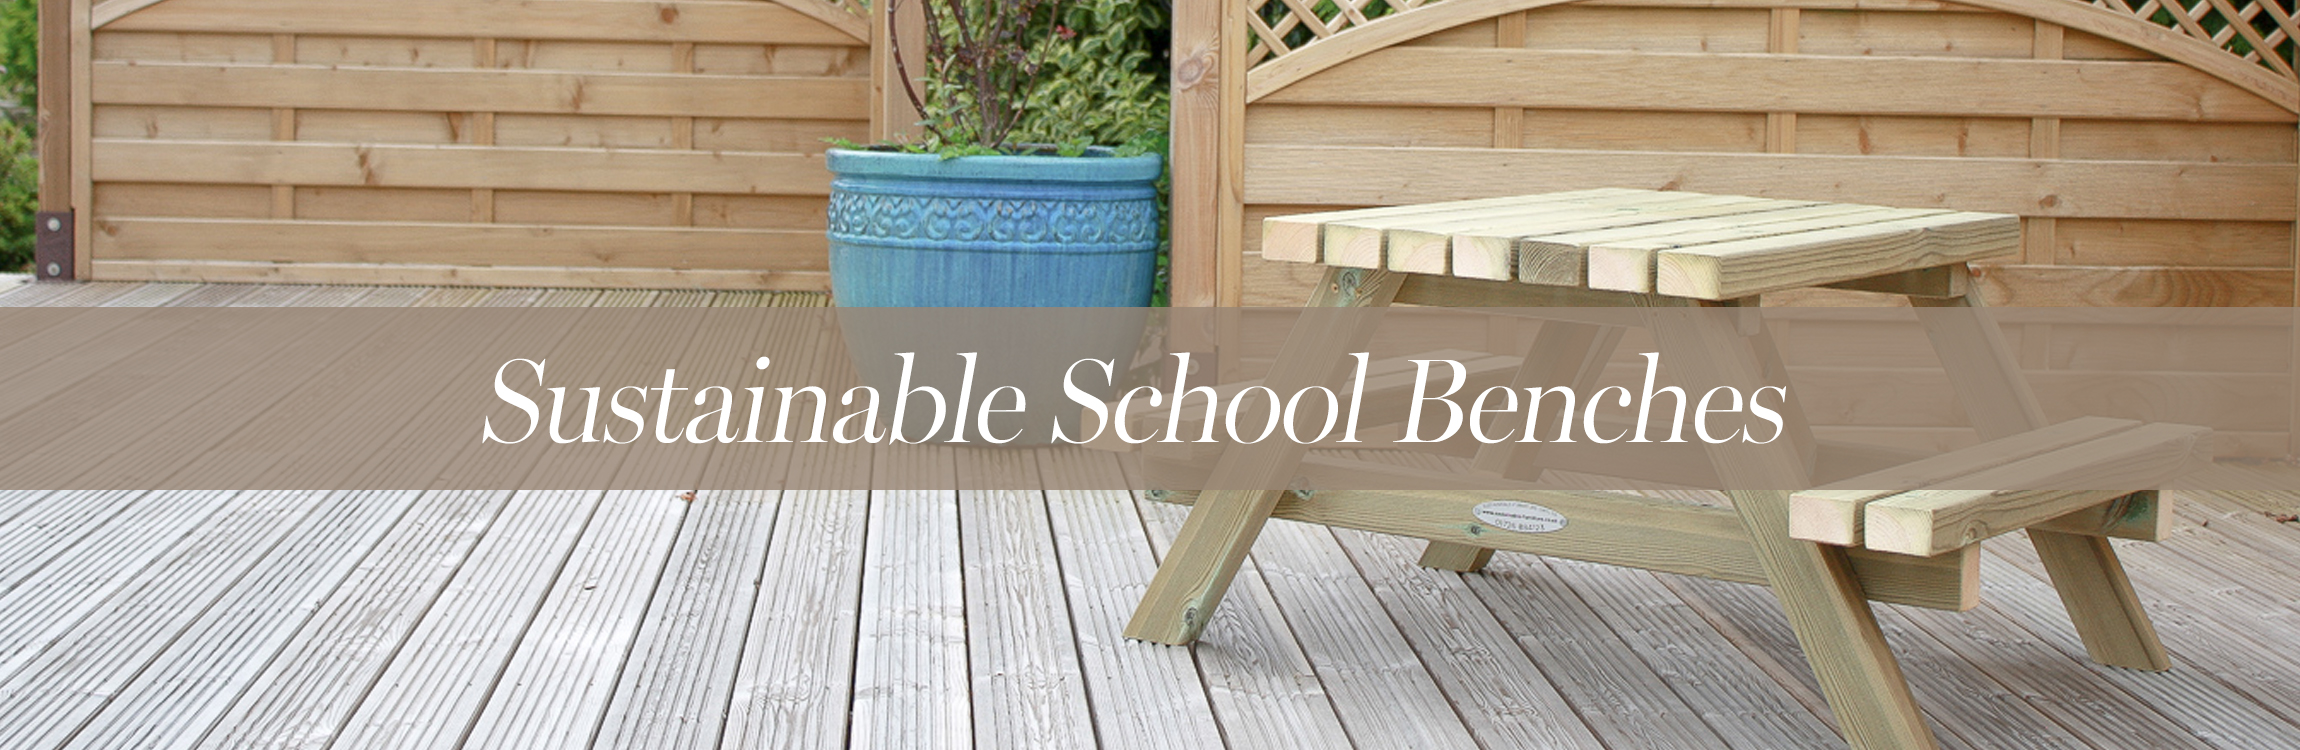 Sustainable School Benches